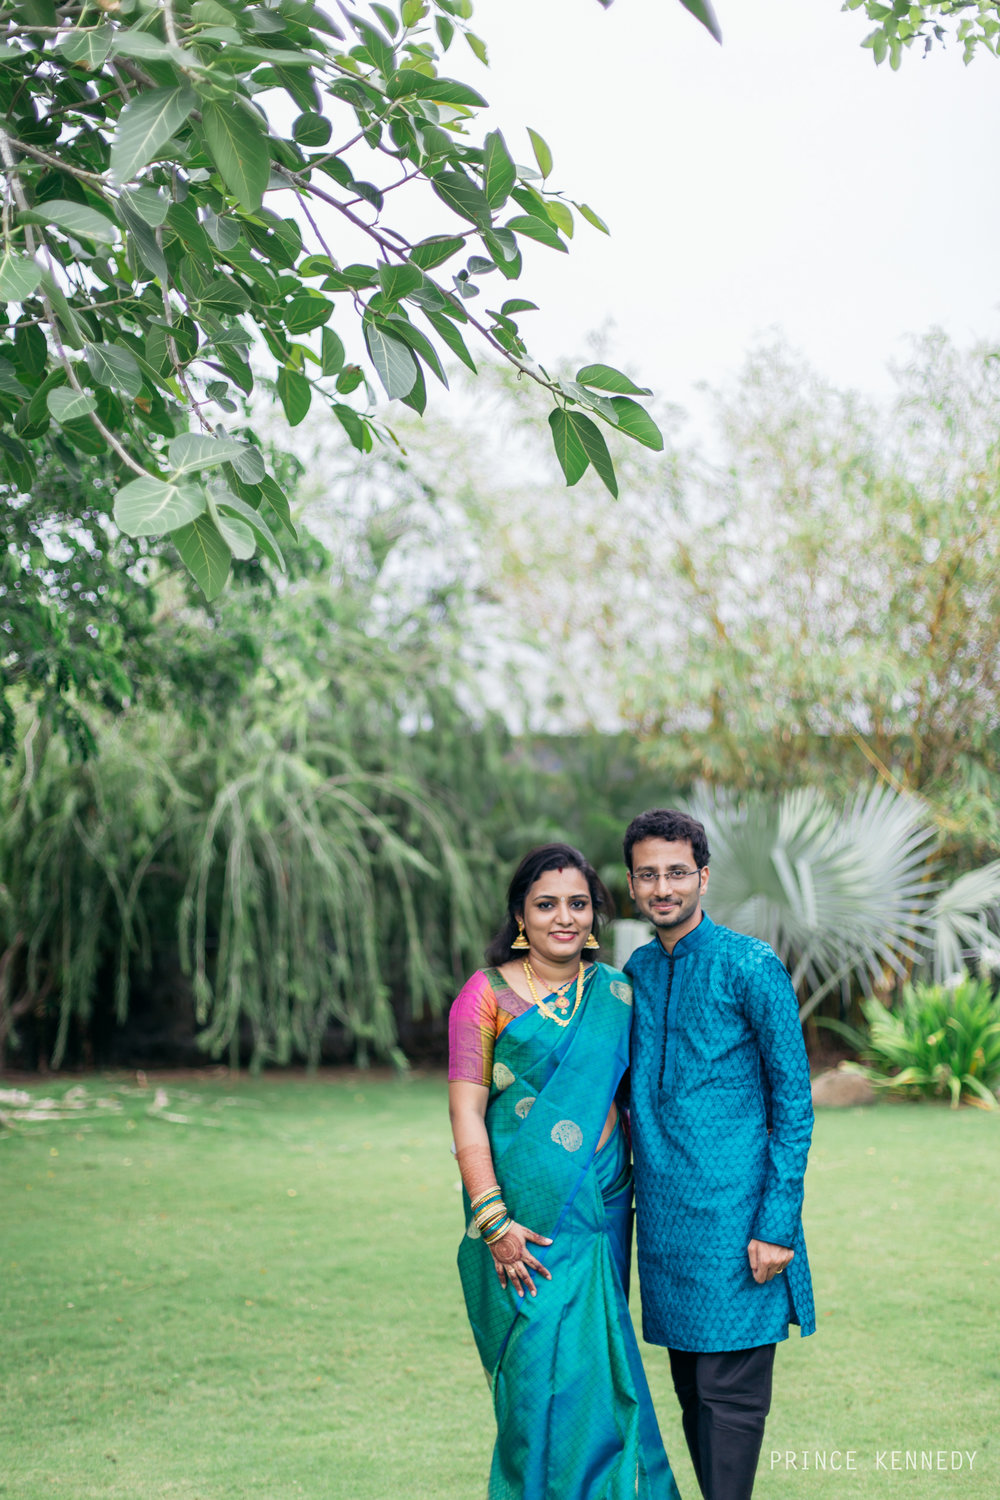 Engagement-Couple-Portrait-Portraiture-Wedding-Couple-Portrait-Chennai-Photographer-Candid-Photography-Destination-Best-Prince-Kennedy-Photography-110.jpg